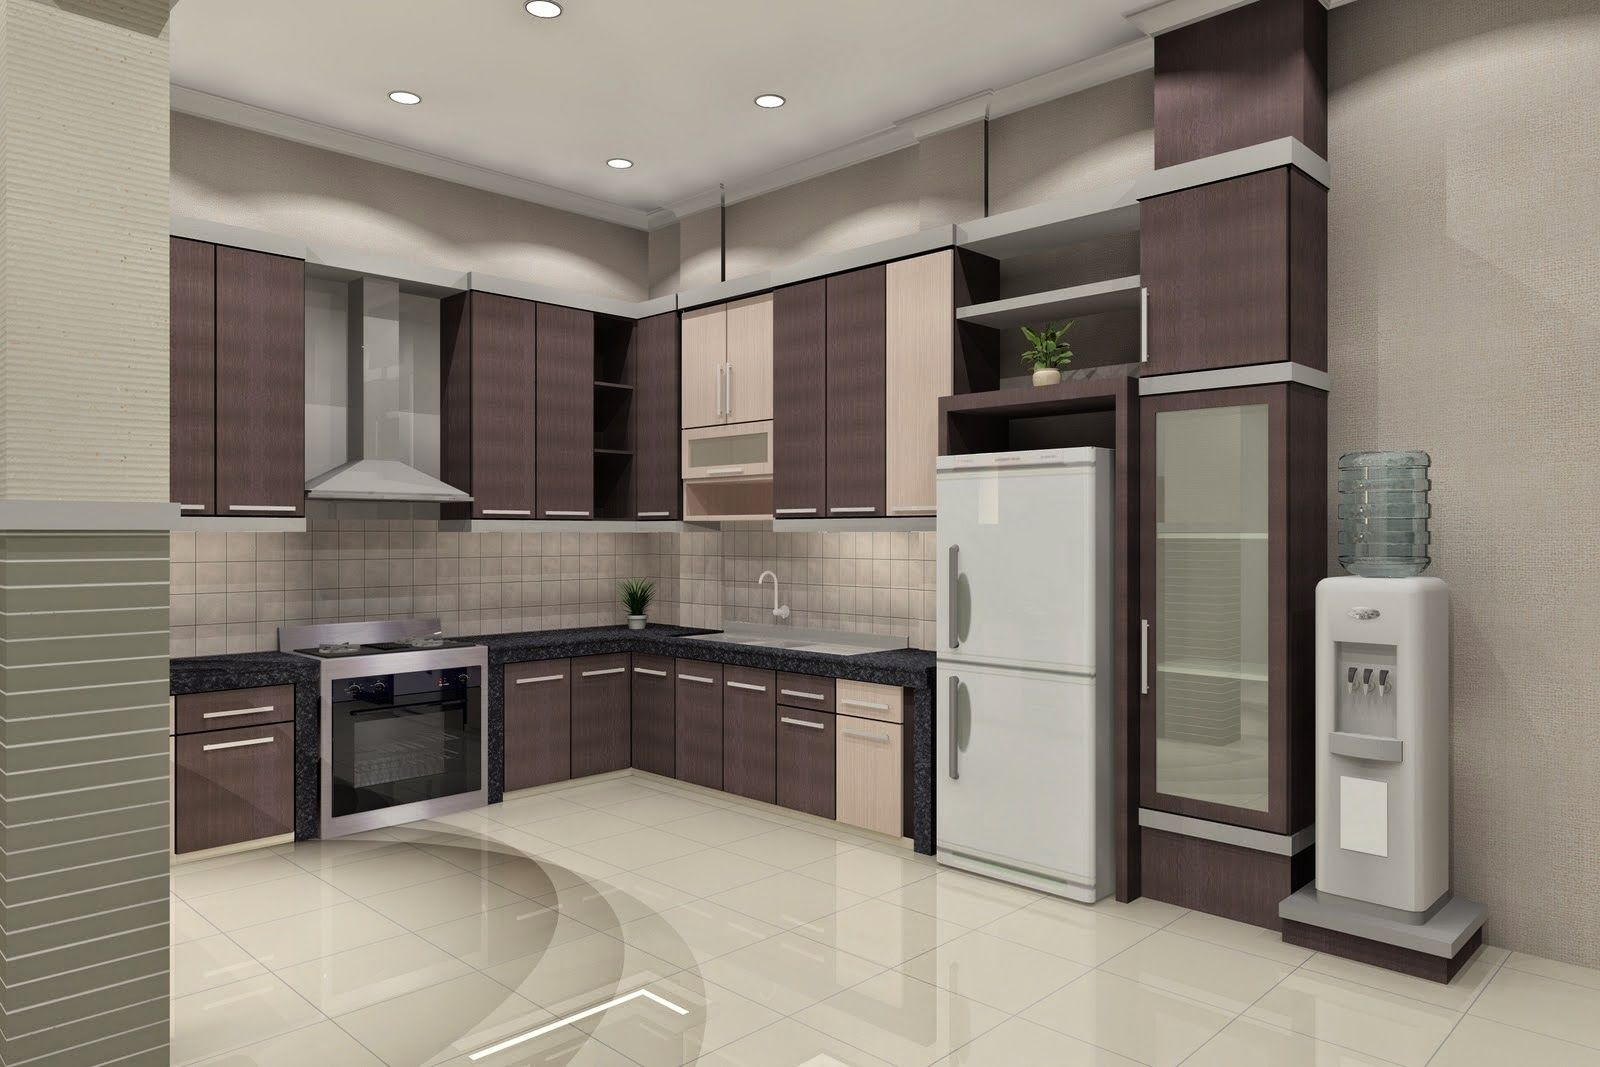 Examples of simple minimalist kitchen design new home designs